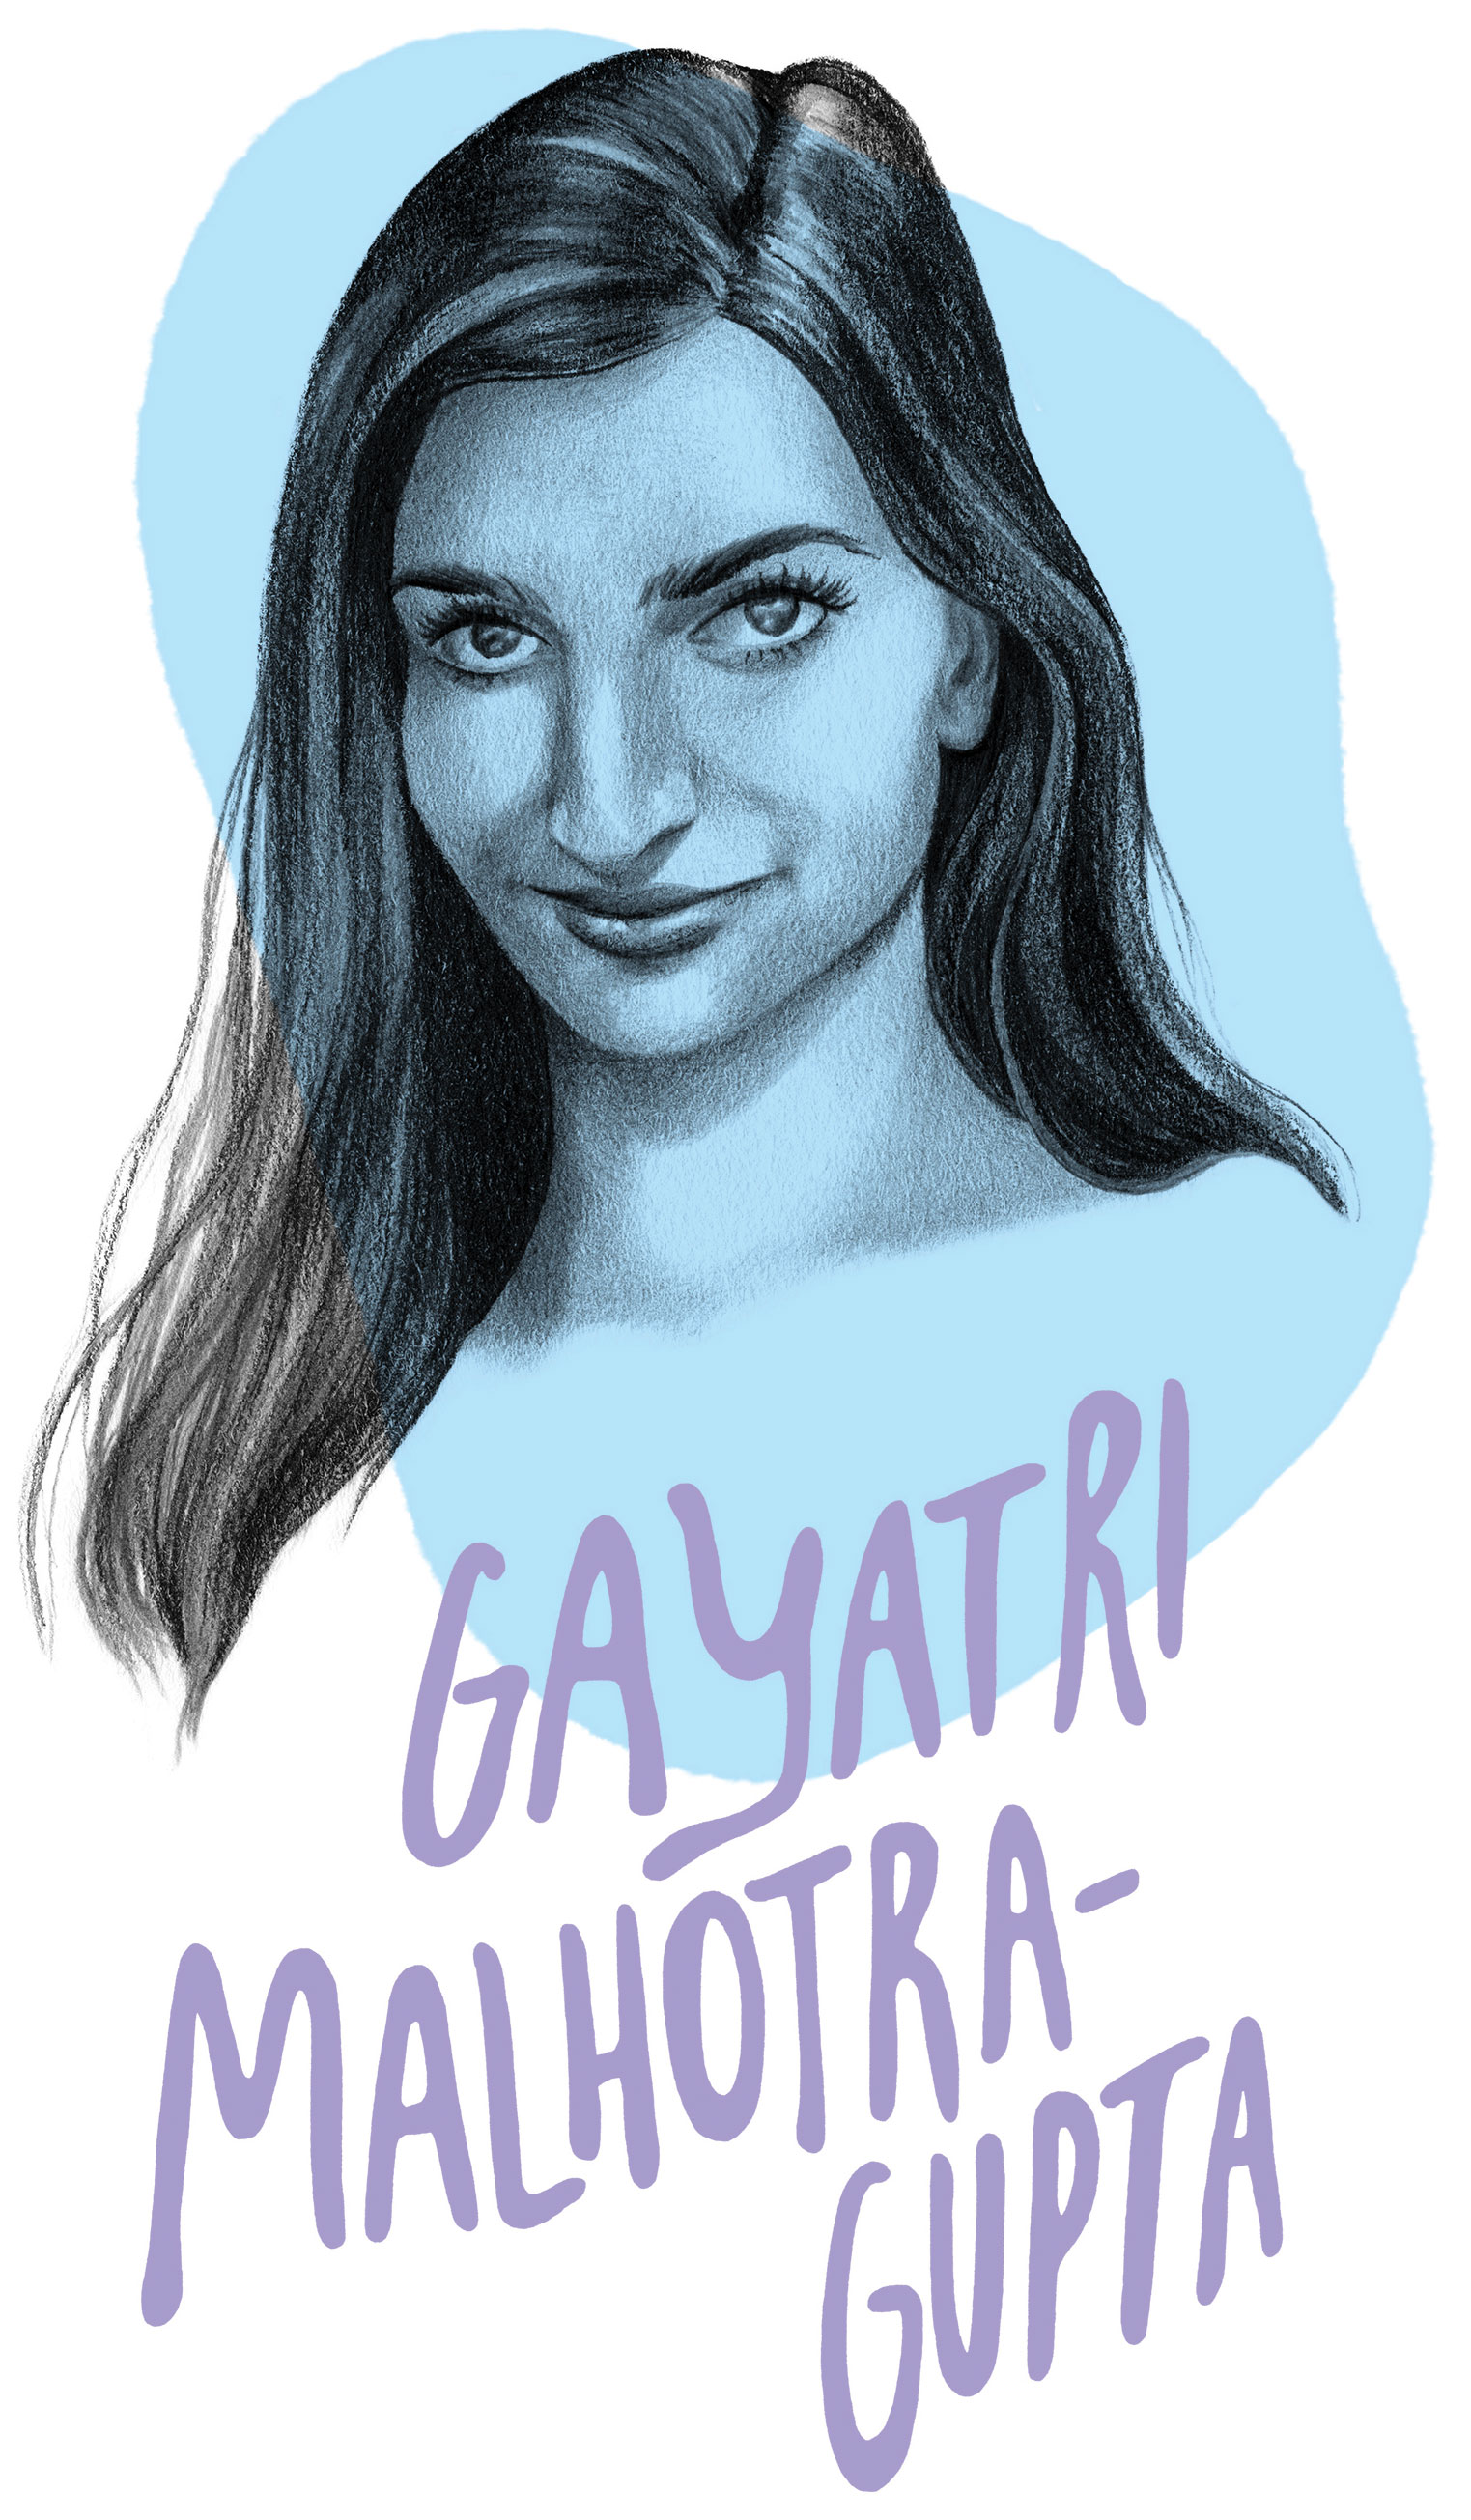 Gayatri Malhotra-Gupta Portrait Illustration